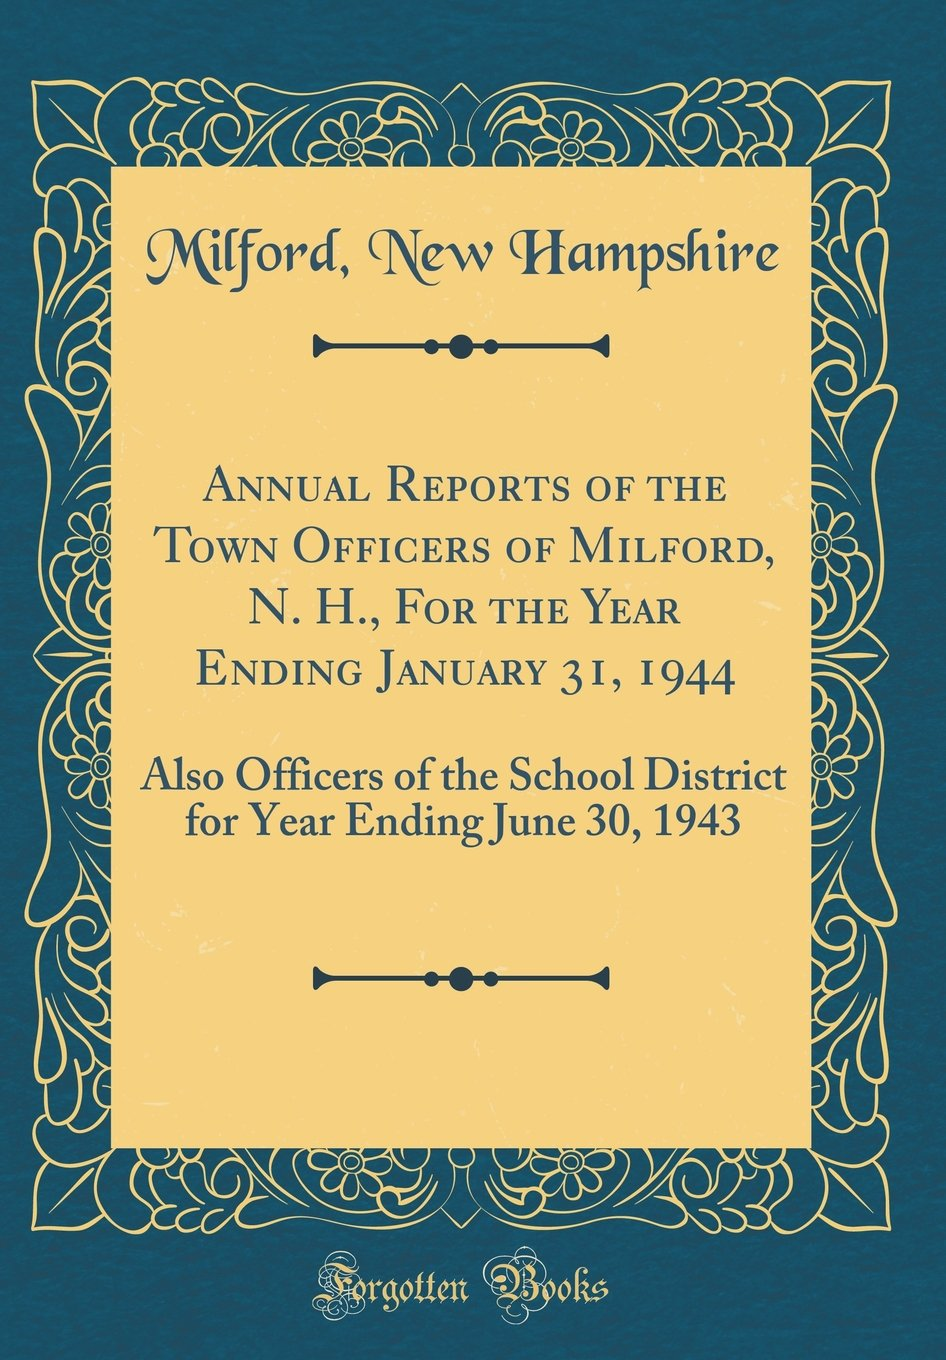 Read Online Annual Reports of the Town Officers of Milford, N. H., For the Year Ending January 31, 1944: Also Officers of the School District for Year Ending June 30, 1943 (Classic Reprint) PDF ePub book